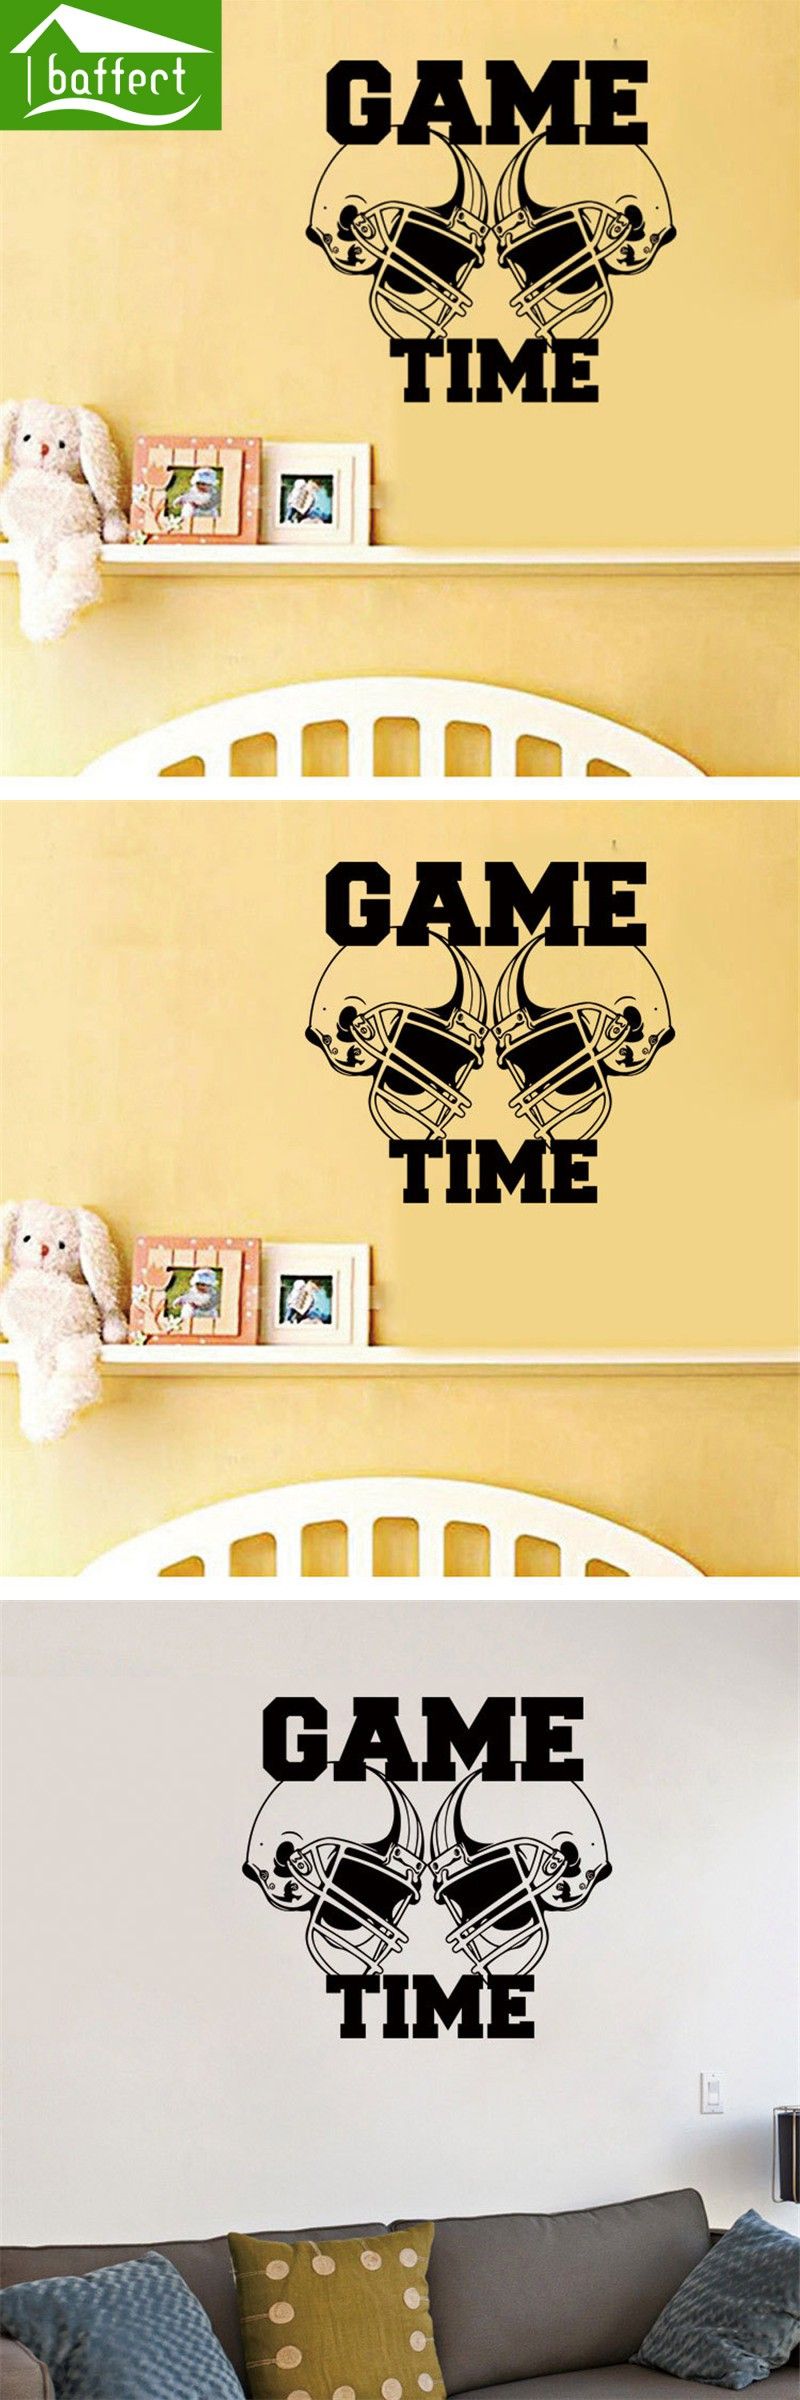 Sport wall art sticker Decals Vinyl Hockey Poster Game House Home ...